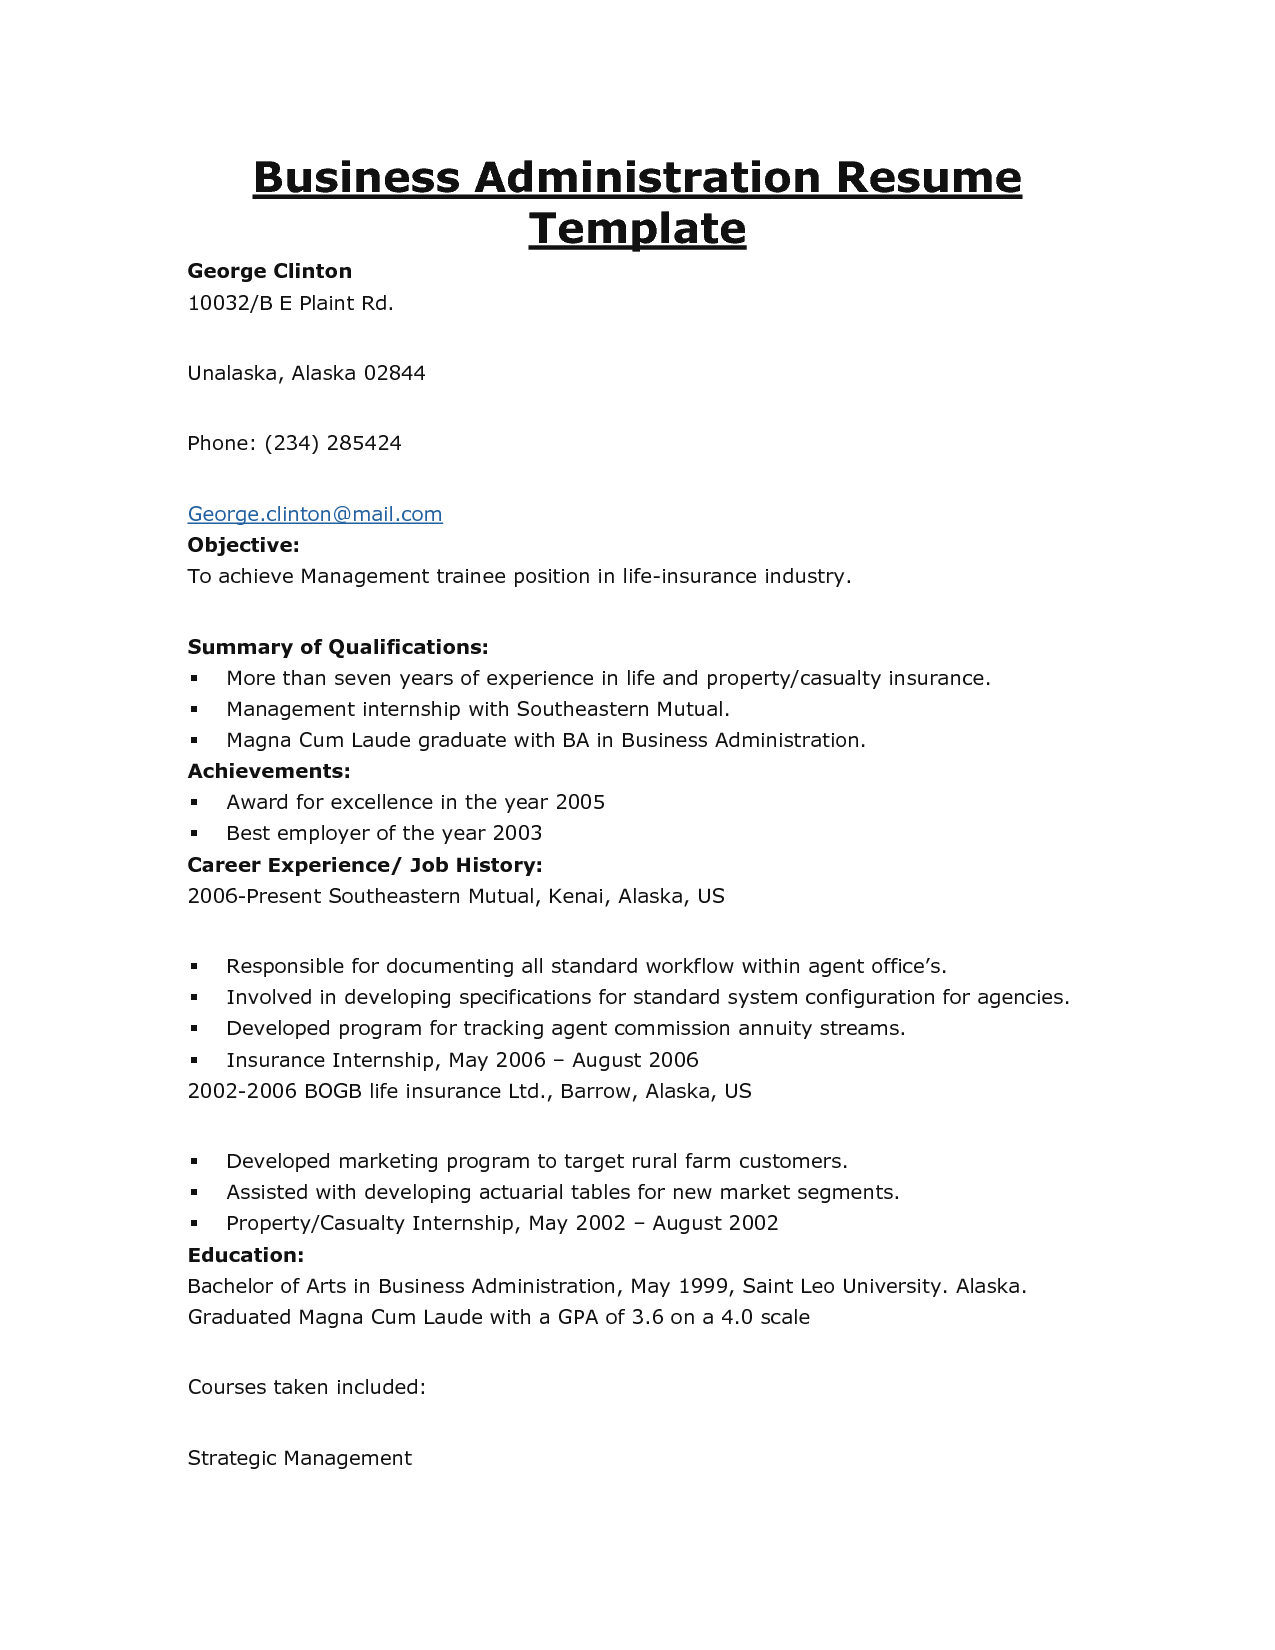 Business Management Resume Samples New Resume Examples Business Management #business #examples #management .